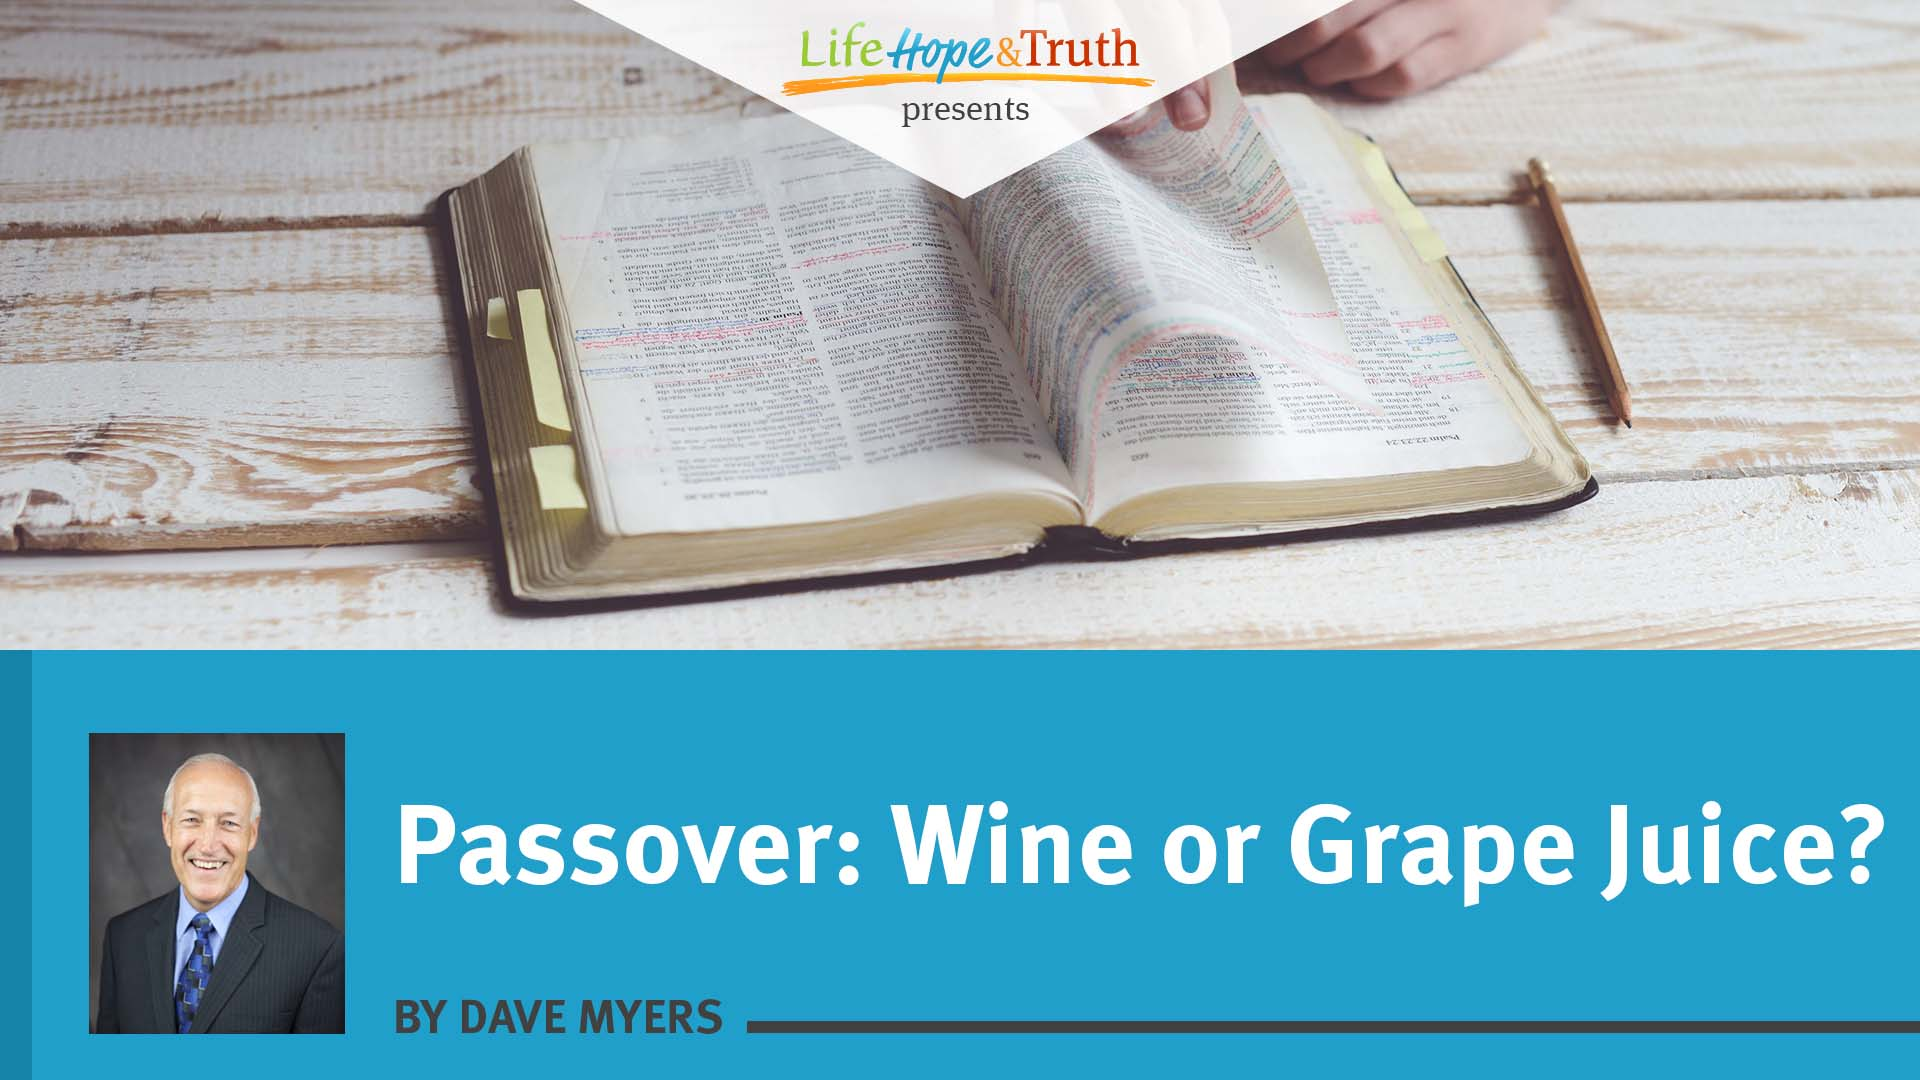 Passover: Wine or Grape Juice?